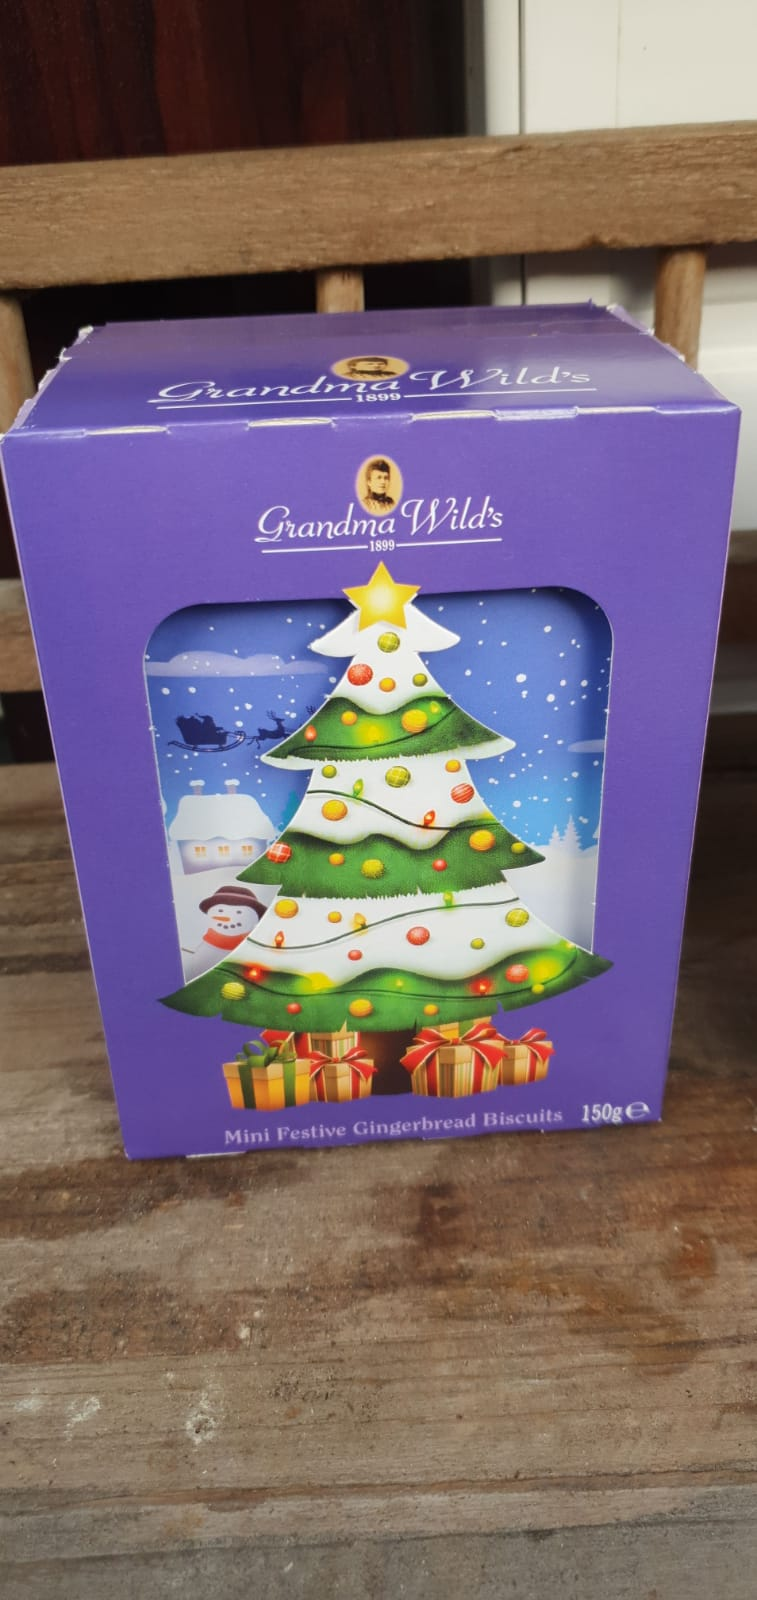 Christmas Food Gift - Christmas Tree Box With Biscuits